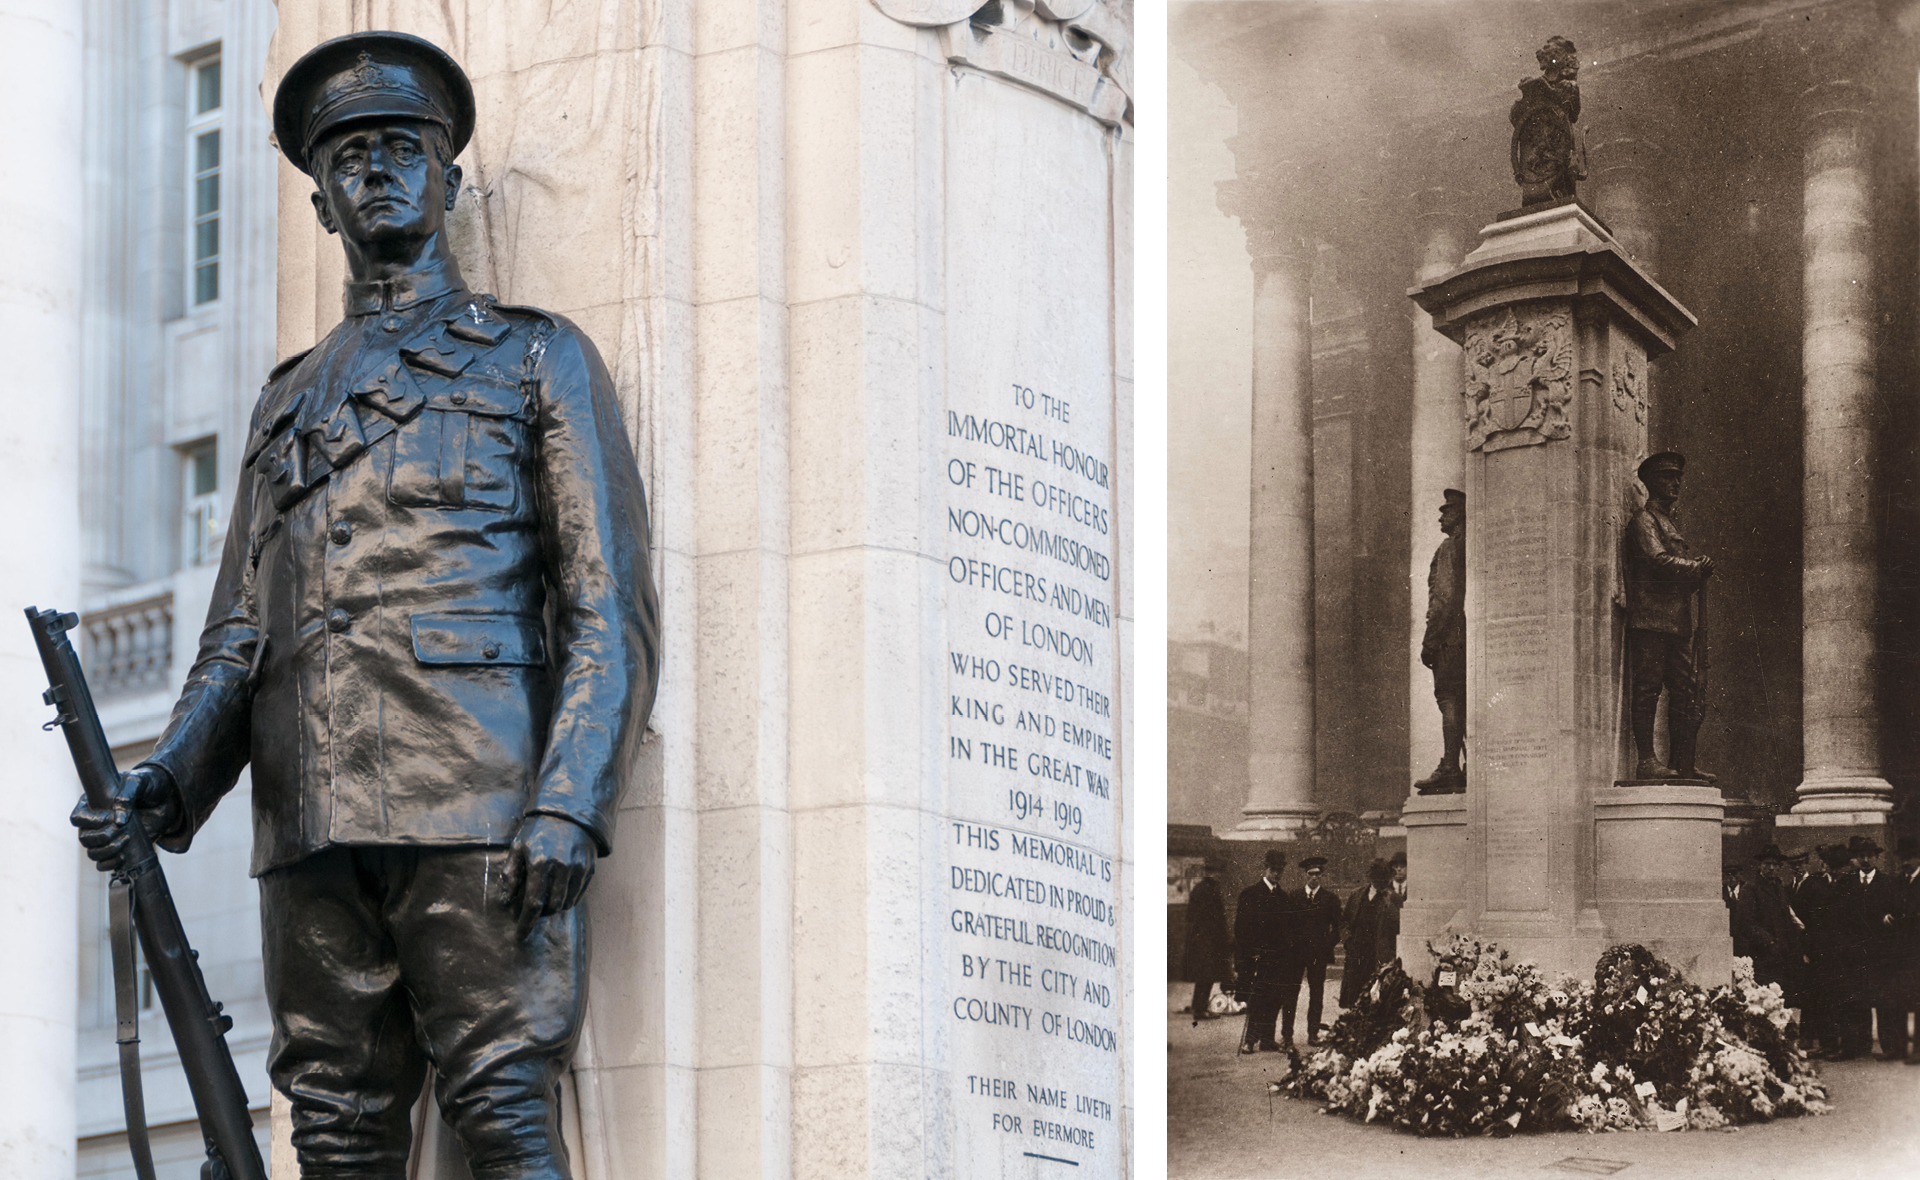 The Troops' Memorial at The Royal Exchange, London